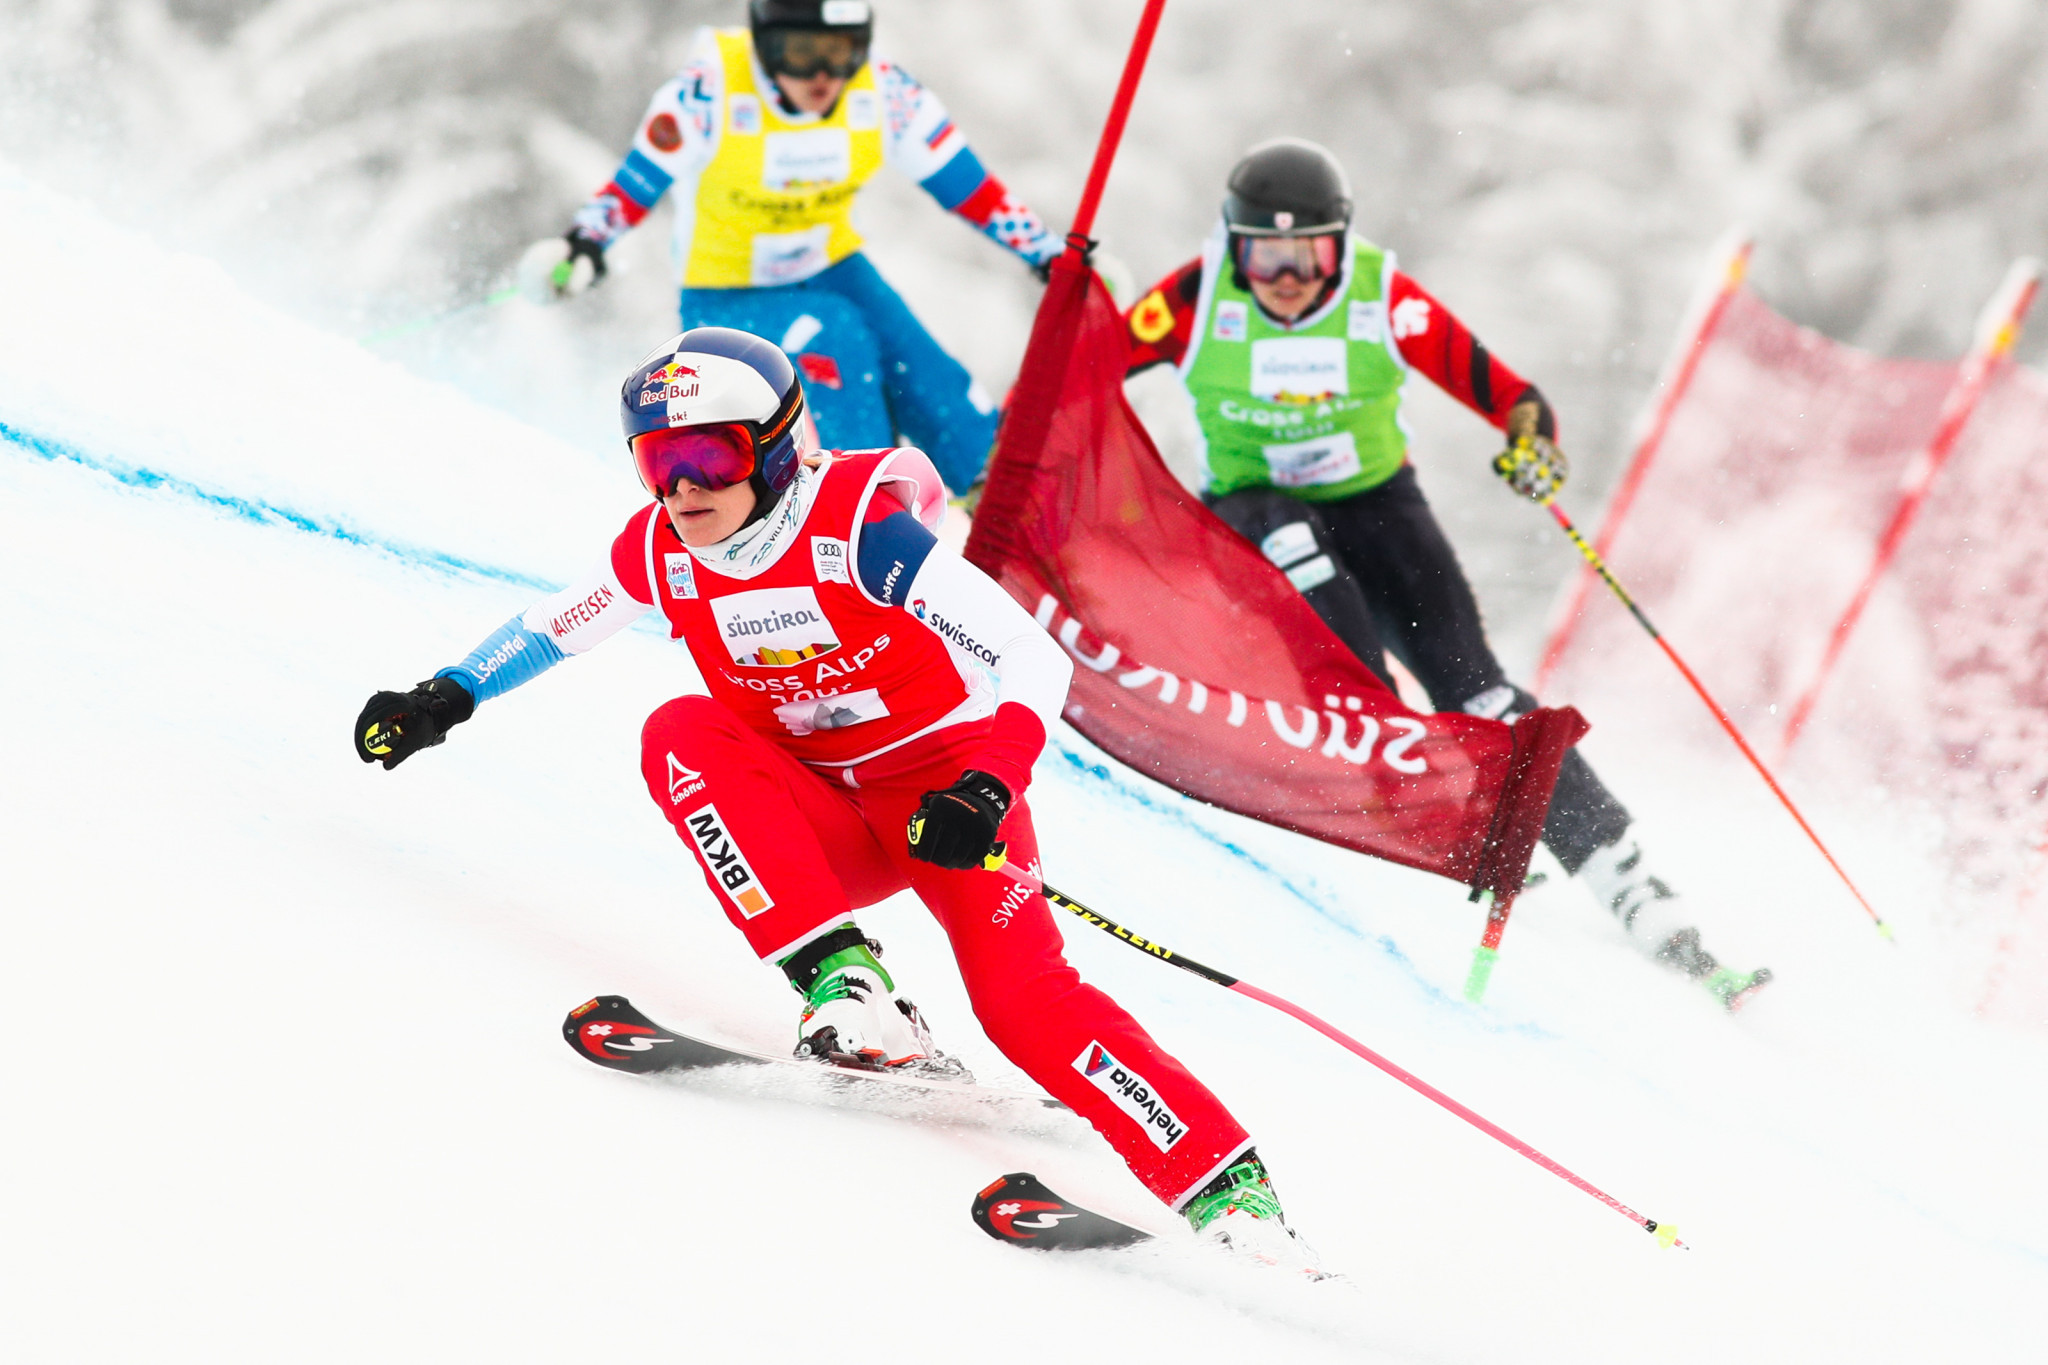 Smith records 25th Ski Cross World Cup win of career with Val Thorens triumph